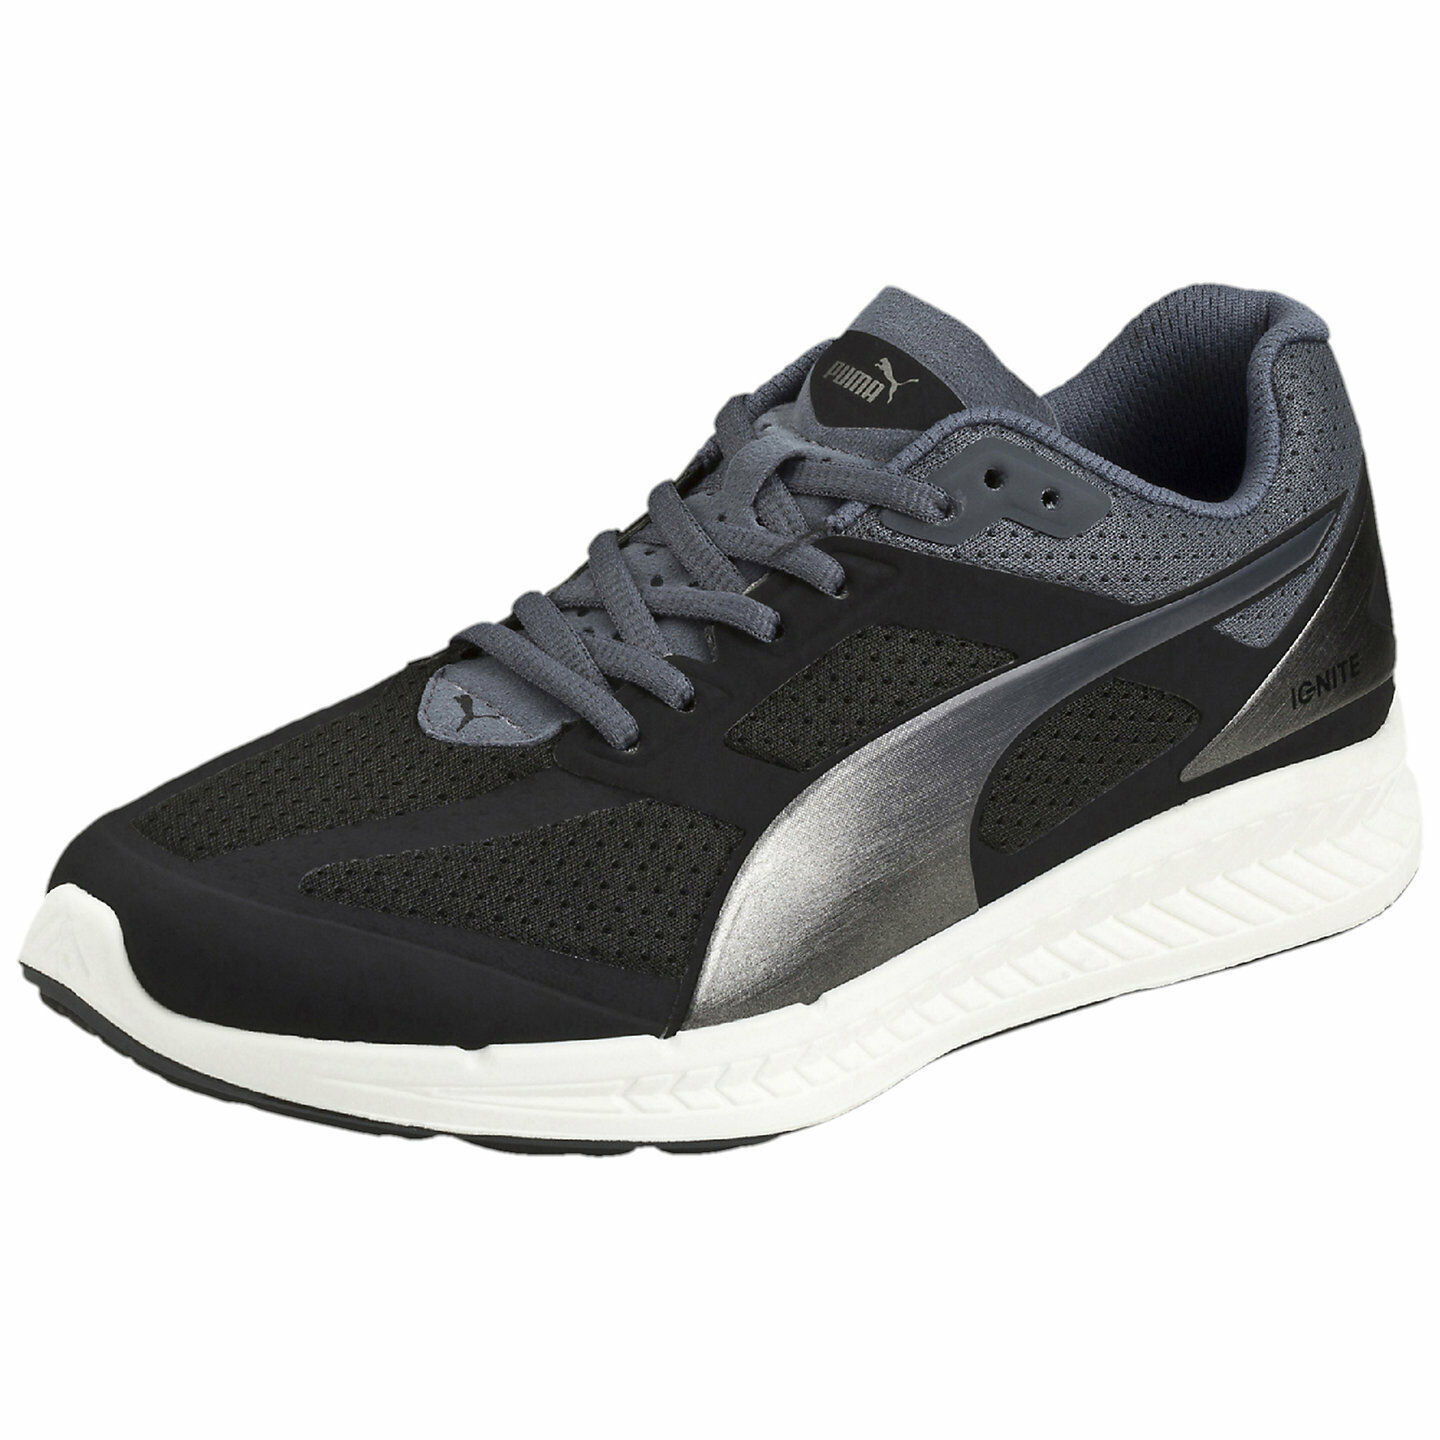 Women's Puma IGNITE Running Shoes, 188077 02 Size 6.5 black/puma silver/turbu - $79.95